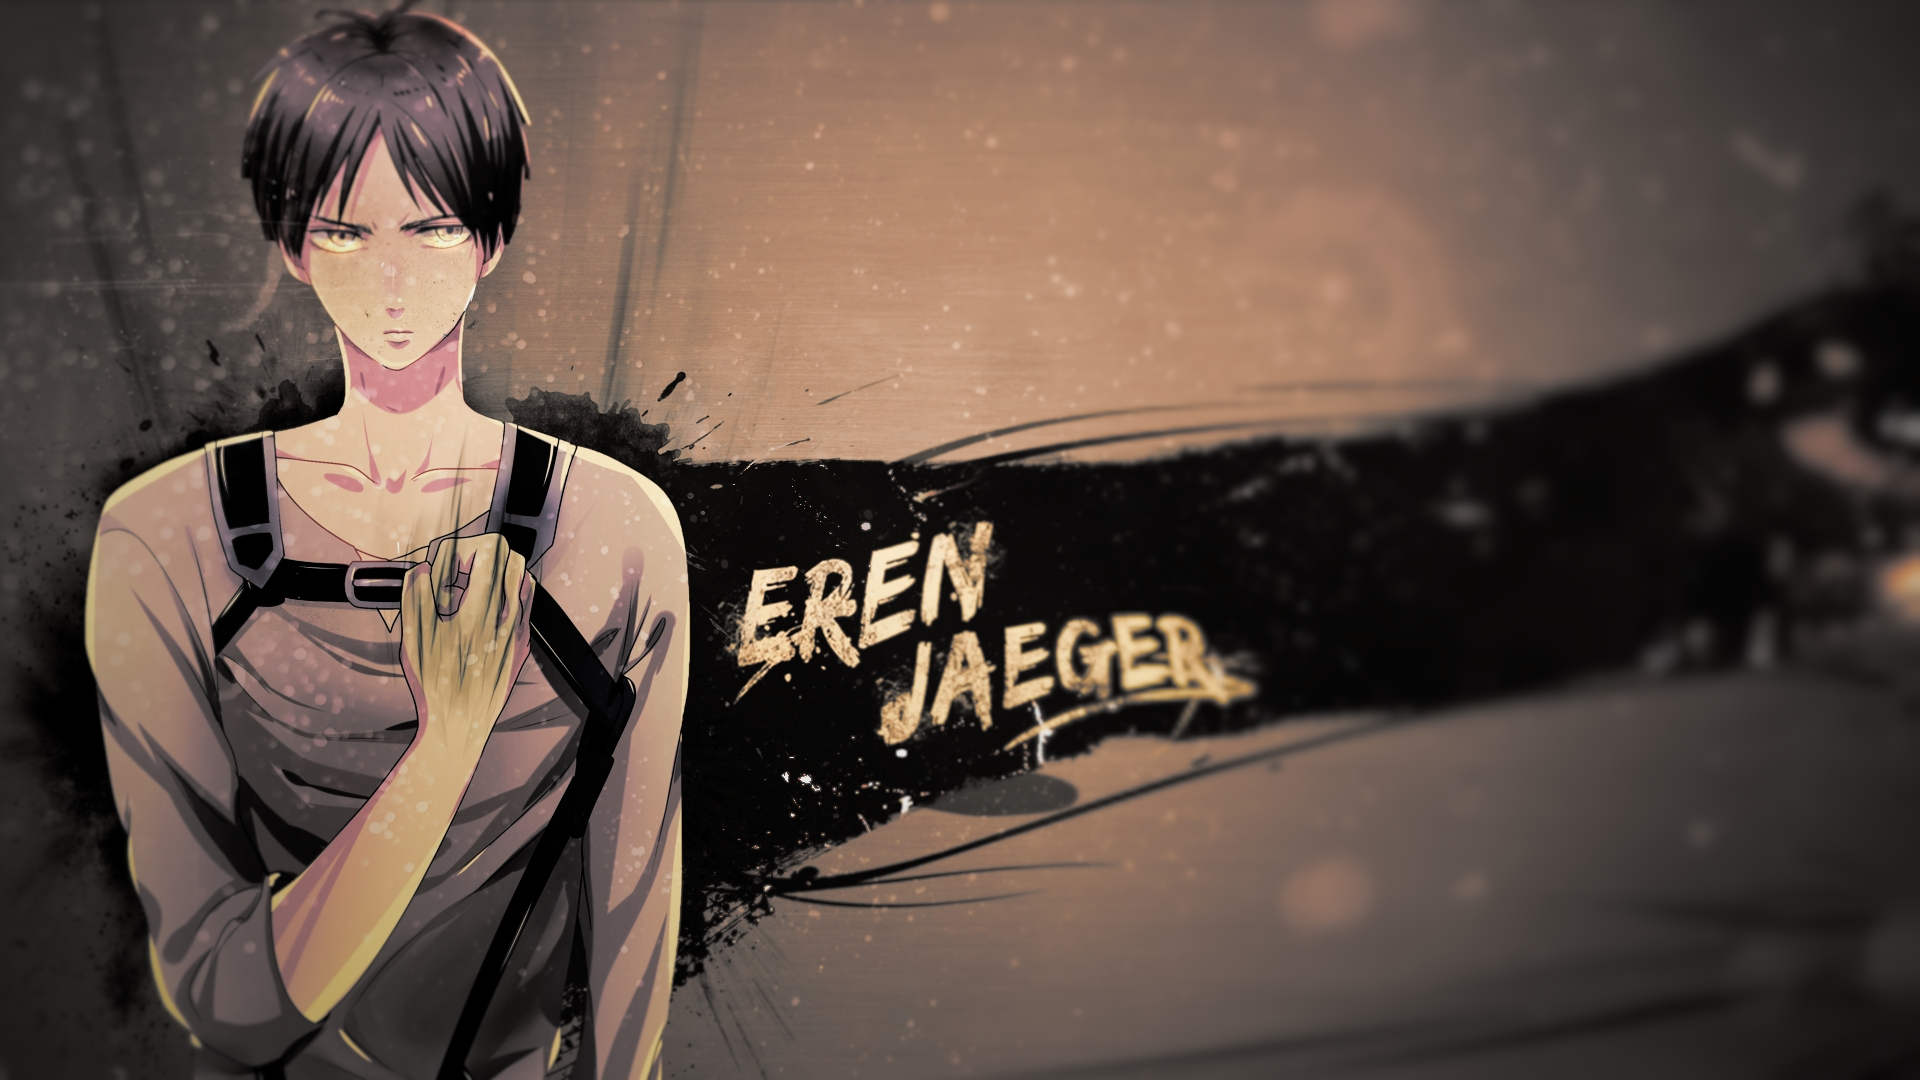 Eren Jaeger Wallpaper HD